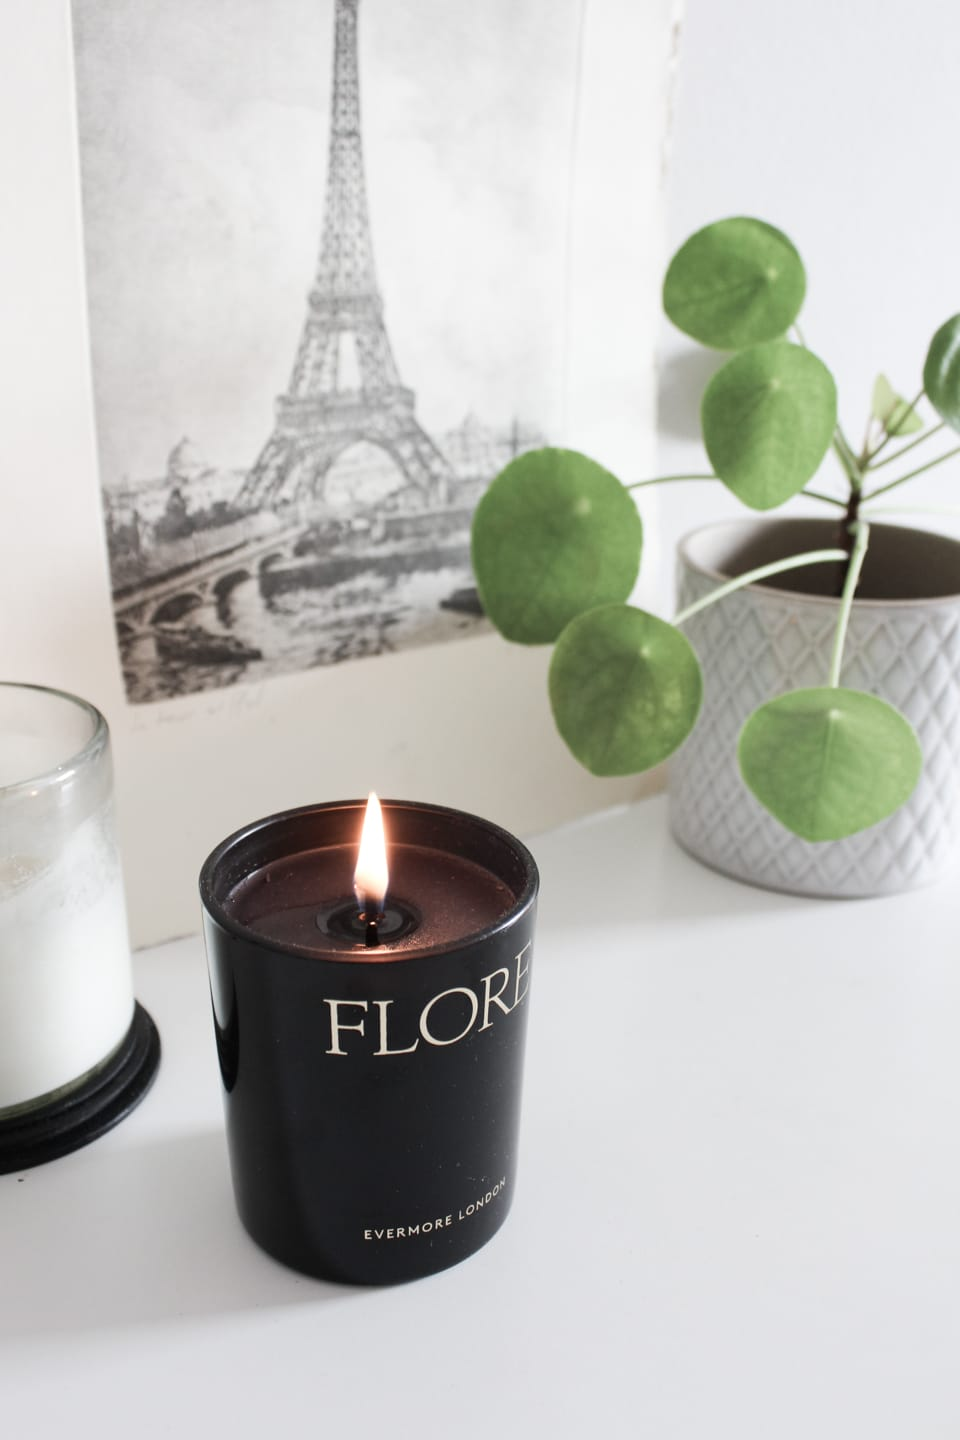 FLORE Candle by Evermore London